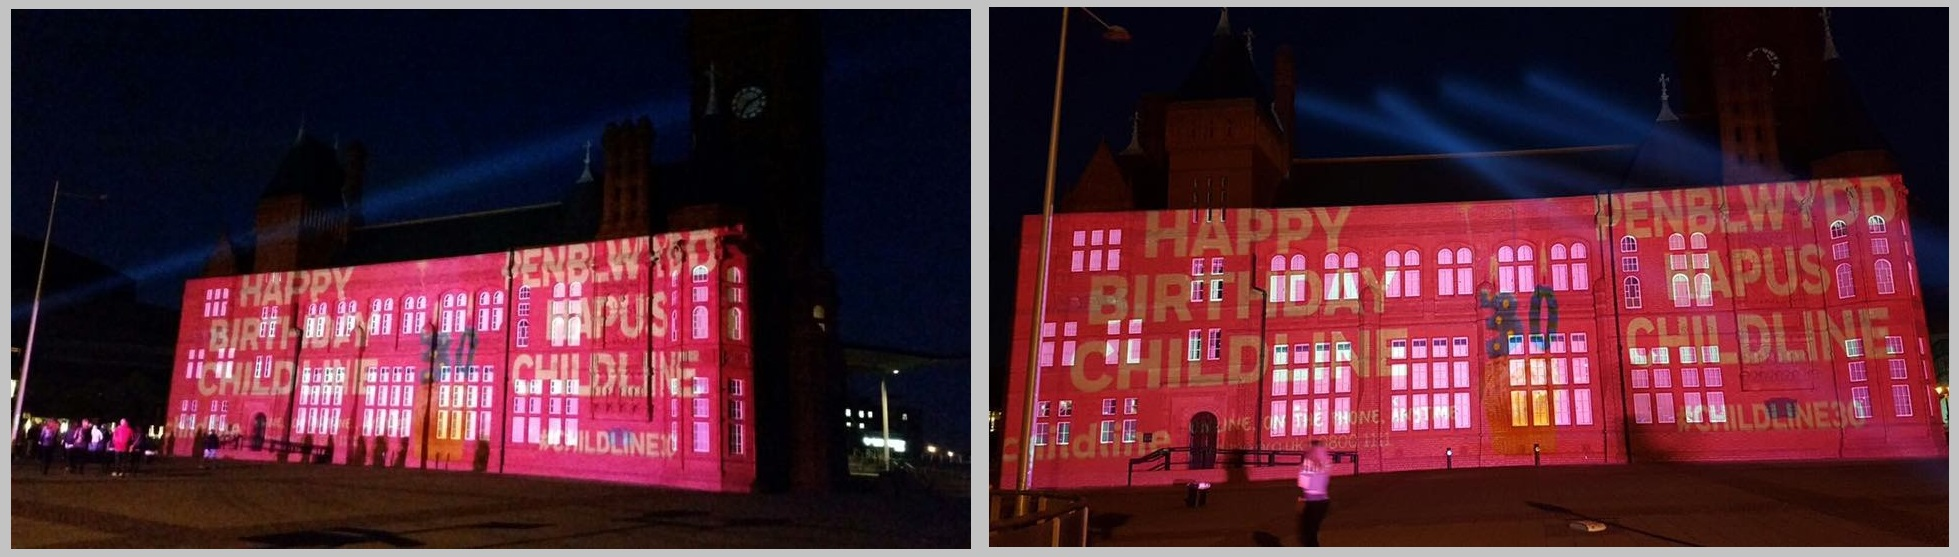 CARDIFF PIER HEAD PROJECTIONS